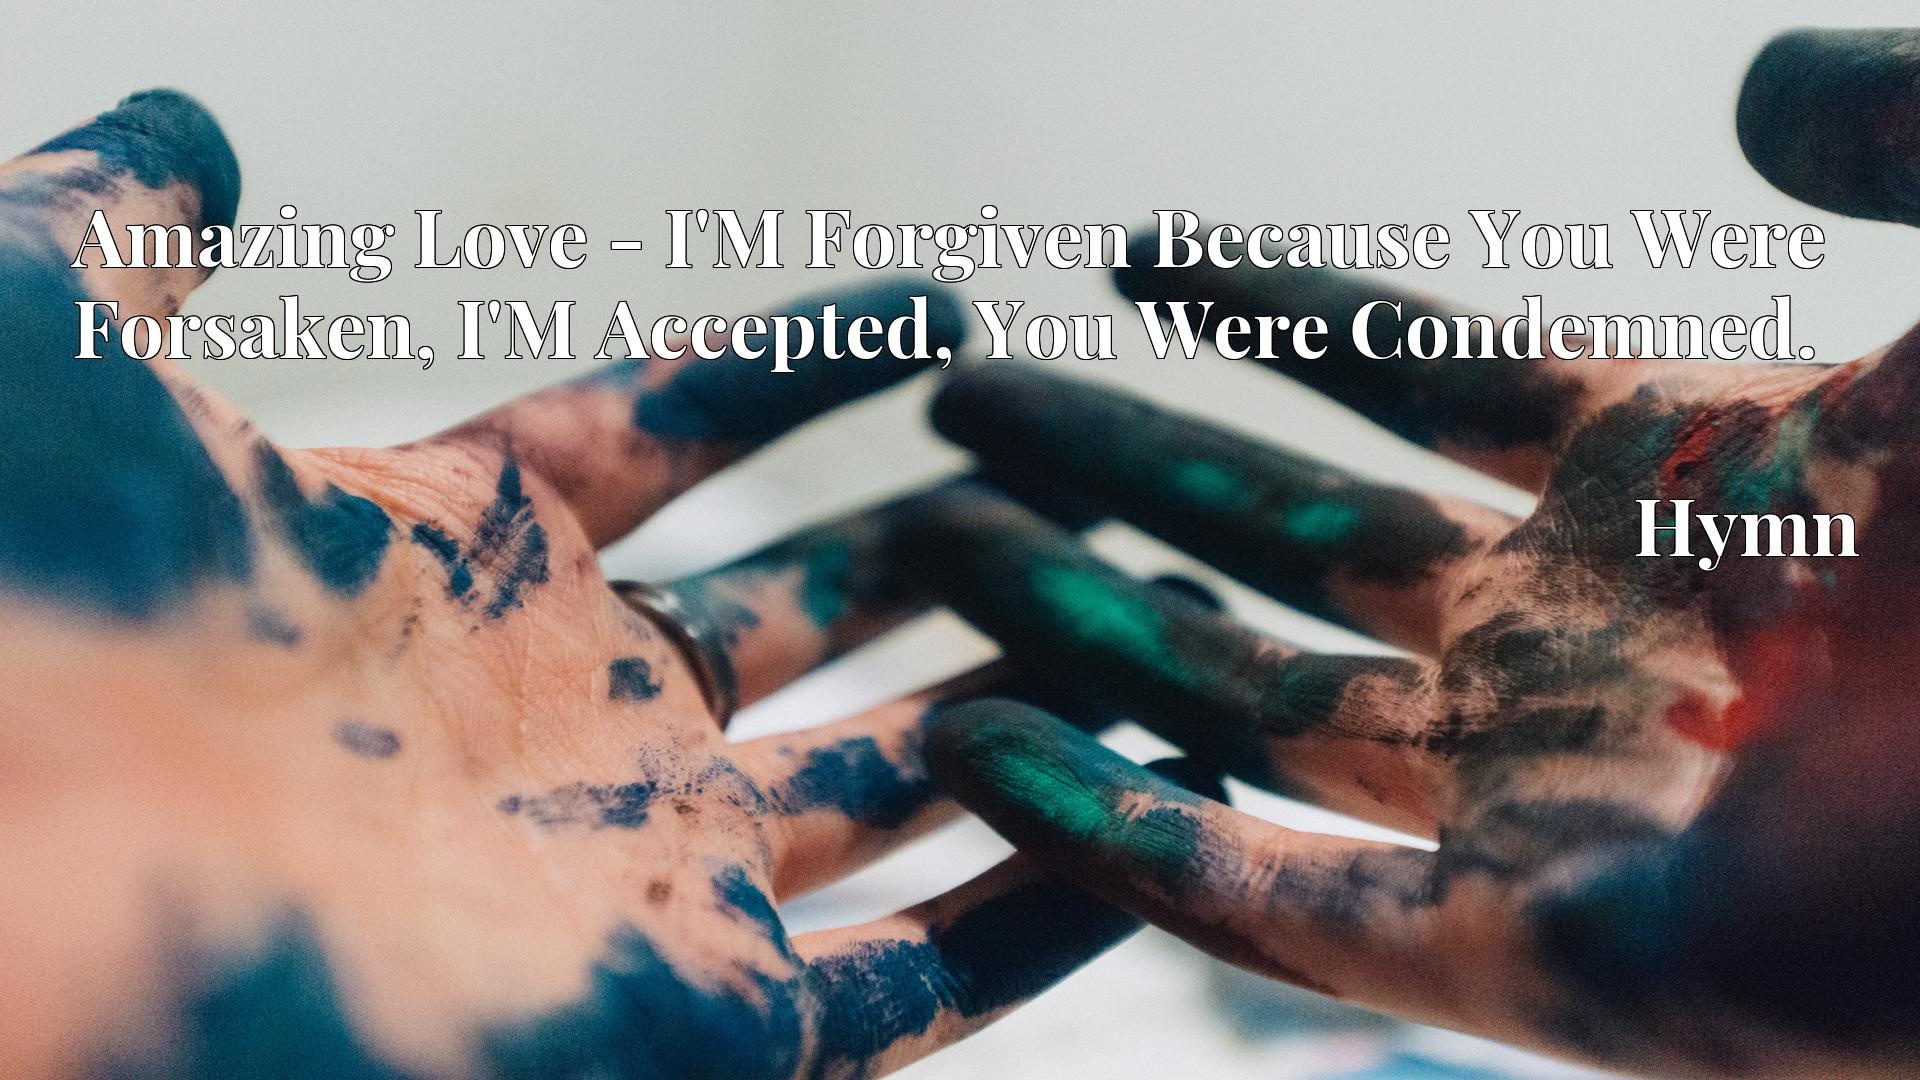 Amazing Love - I'M Forgiven Because You Were Forsaken, I'M Accepted, You Were Condemned. - Hymn